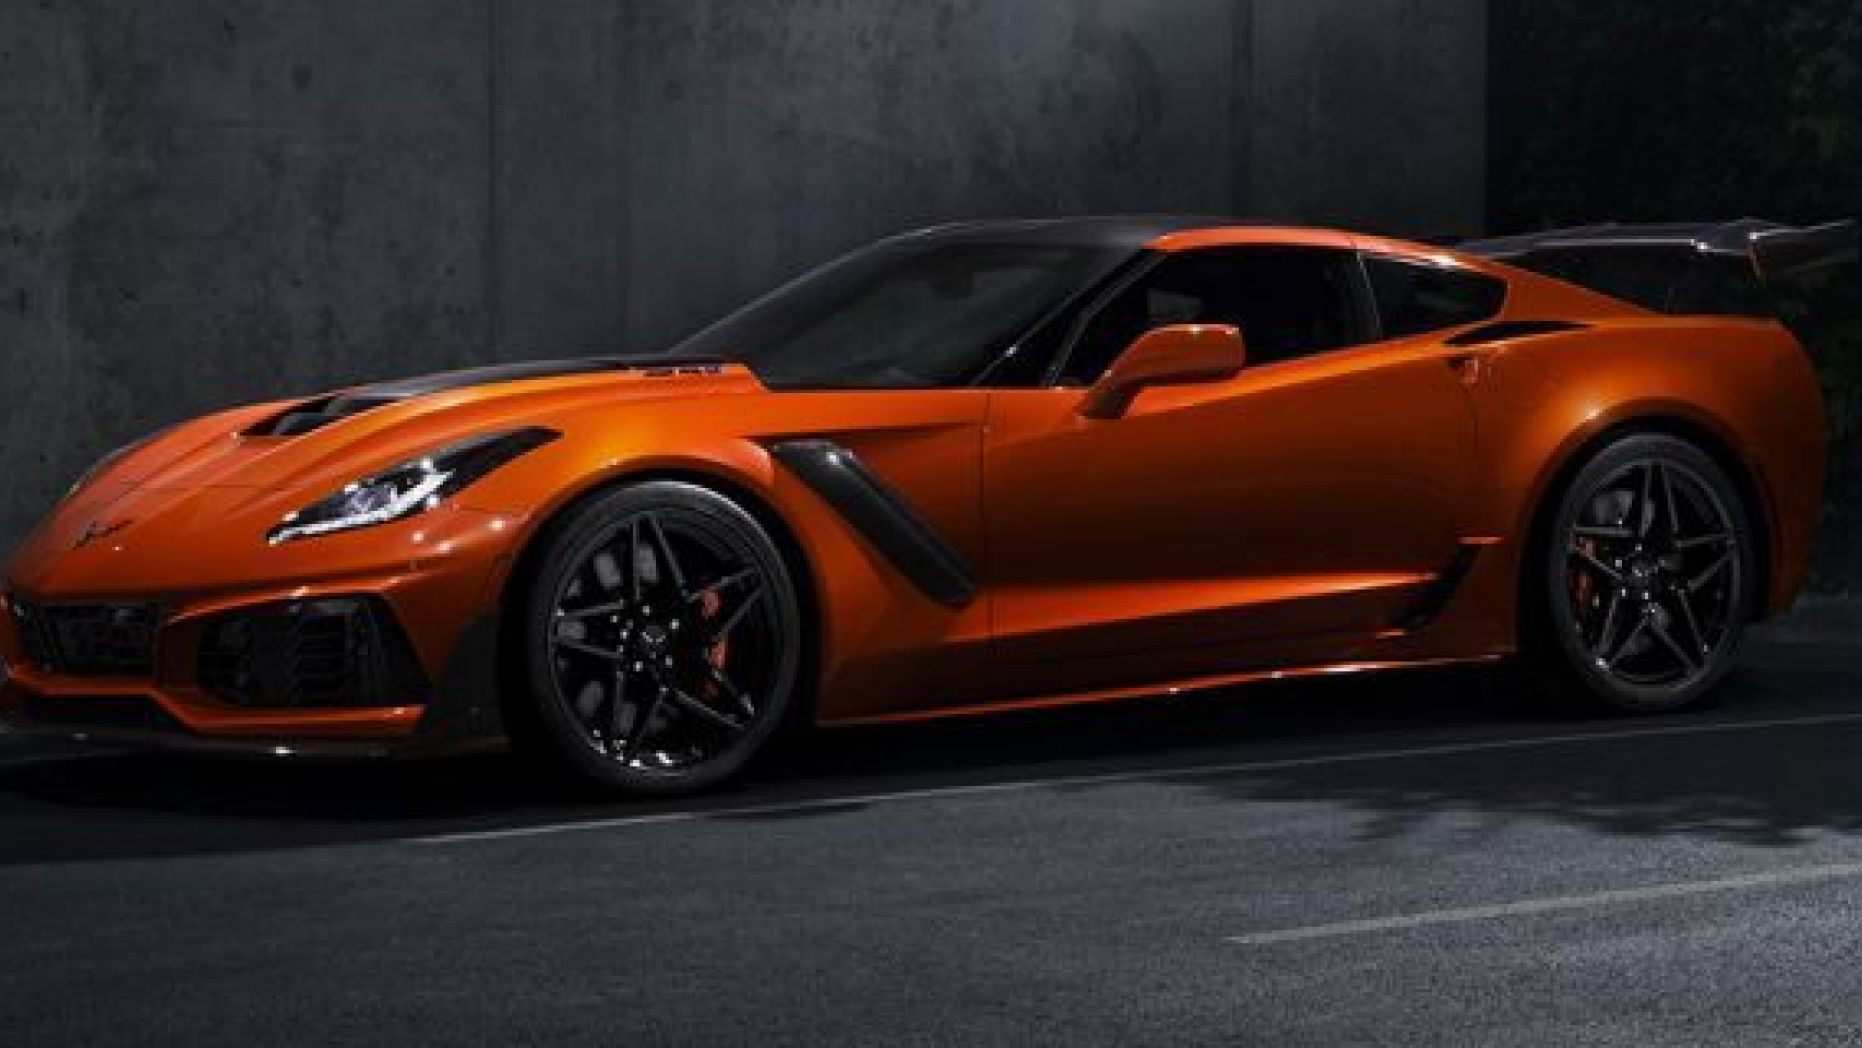 41 New 2019 Chevrolet Corvette Zr1 Is Gms Most Powerful Car Ever Concept